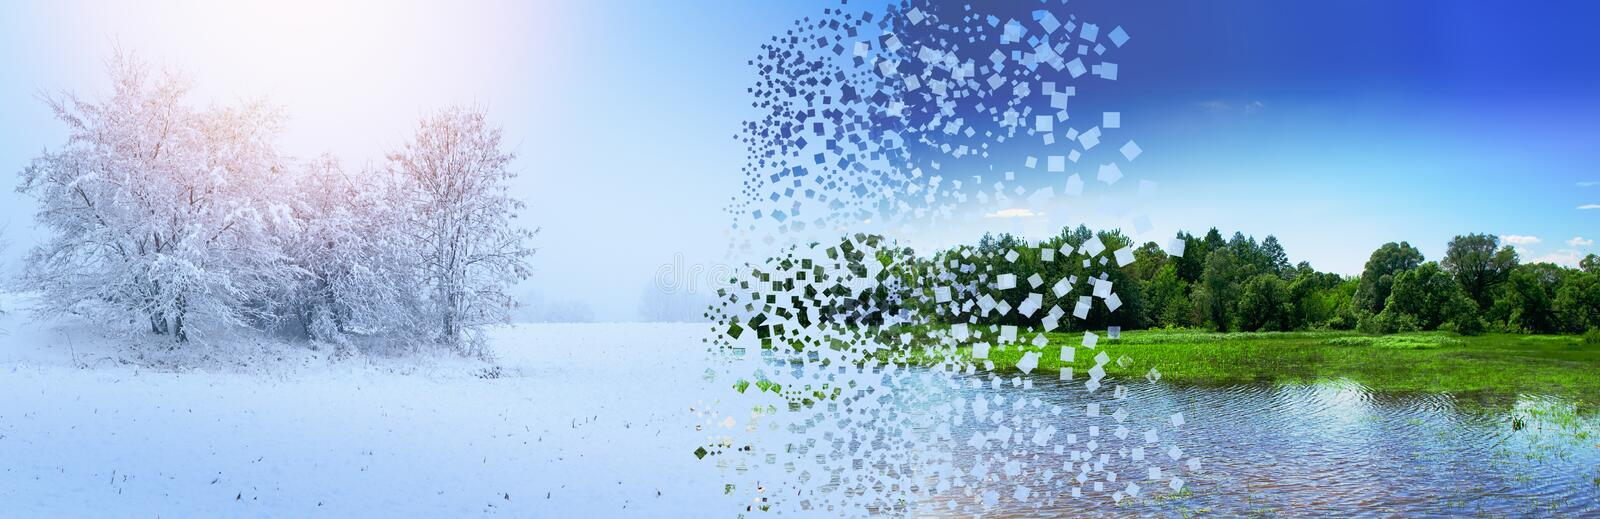 The concept of the change of seasons winter summer with the destruction and expansion of the explosion of pixels photo. royalty free illustration